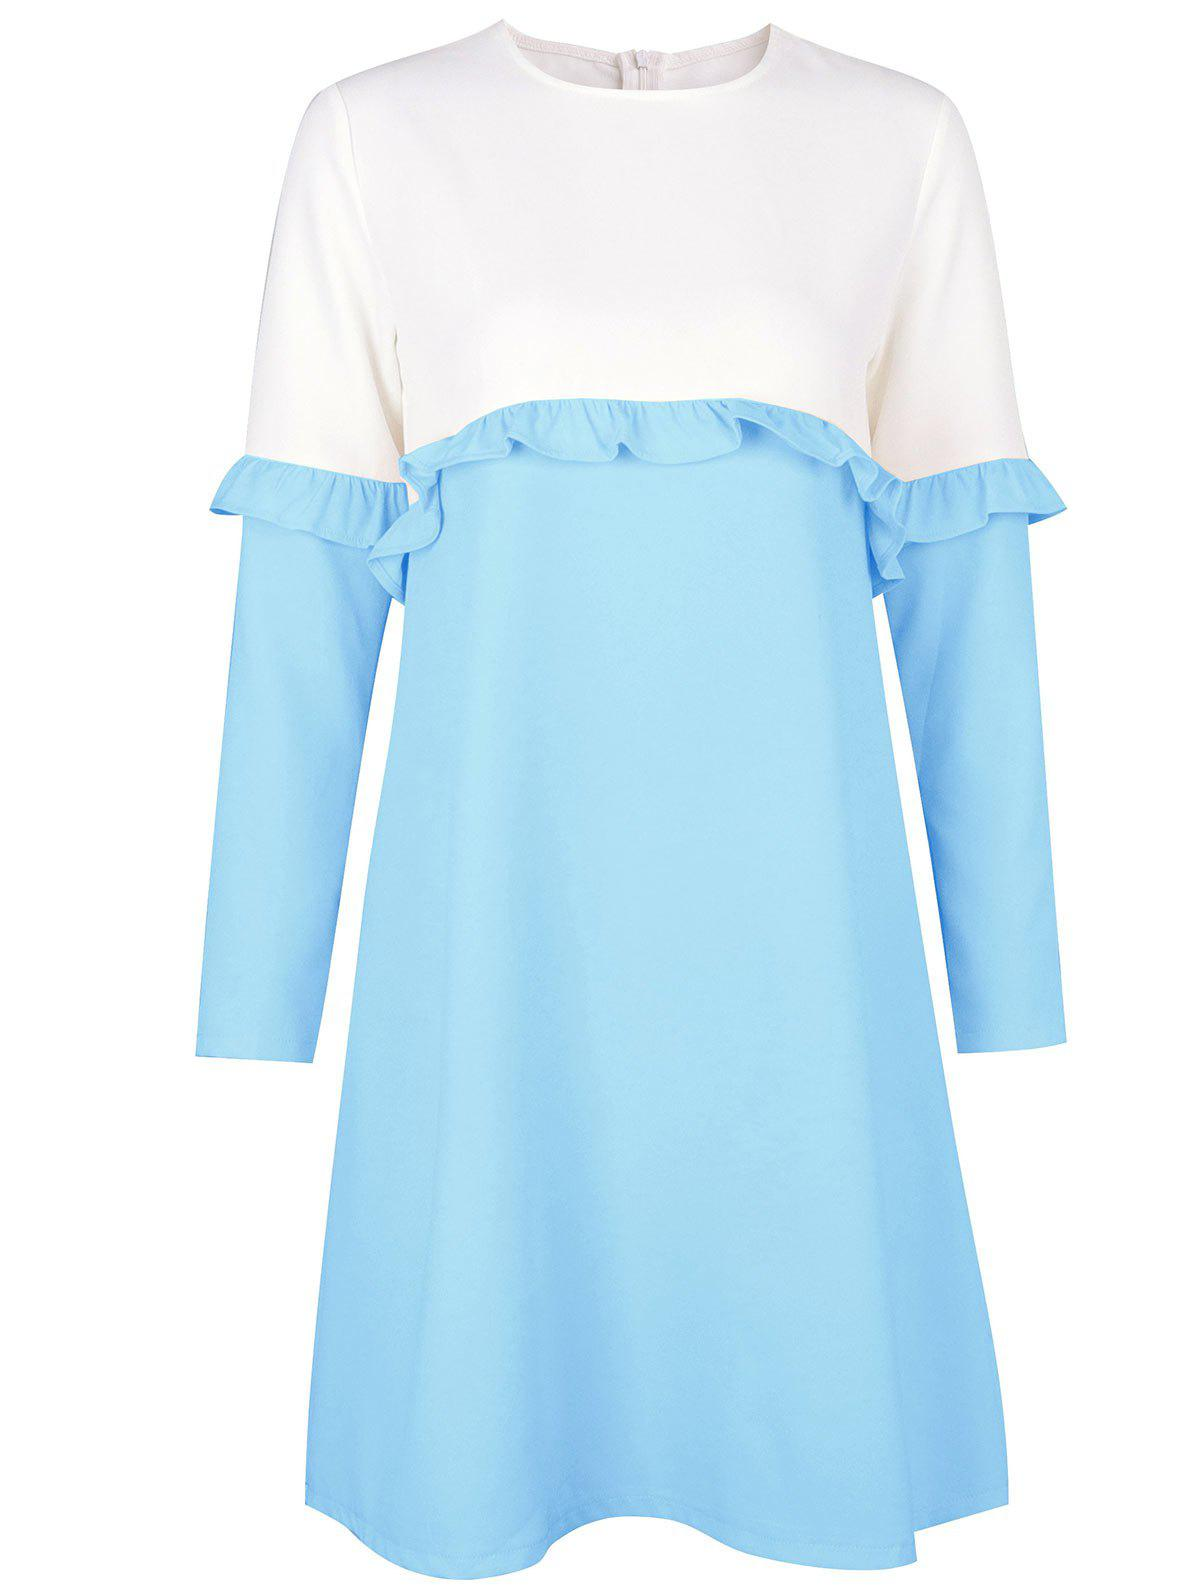 Flounce Two Tone Shift Dress - Bleu clair XL